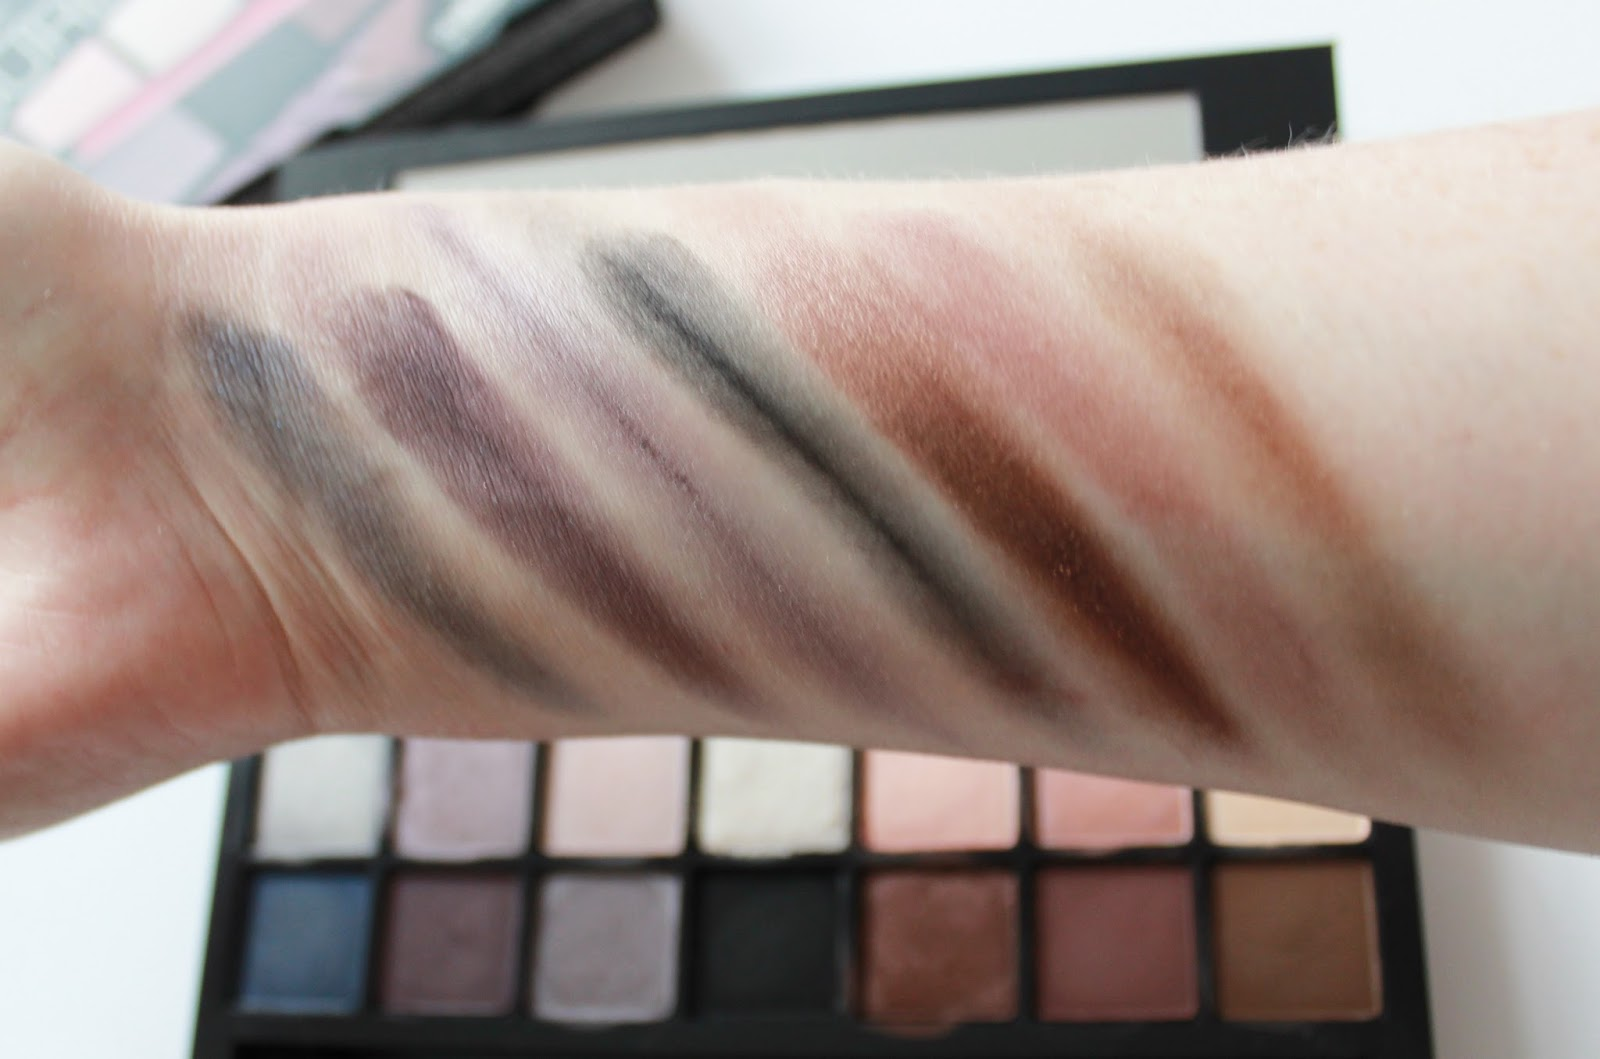 Smashbox double exposure eye shadow palette swatches bottom row